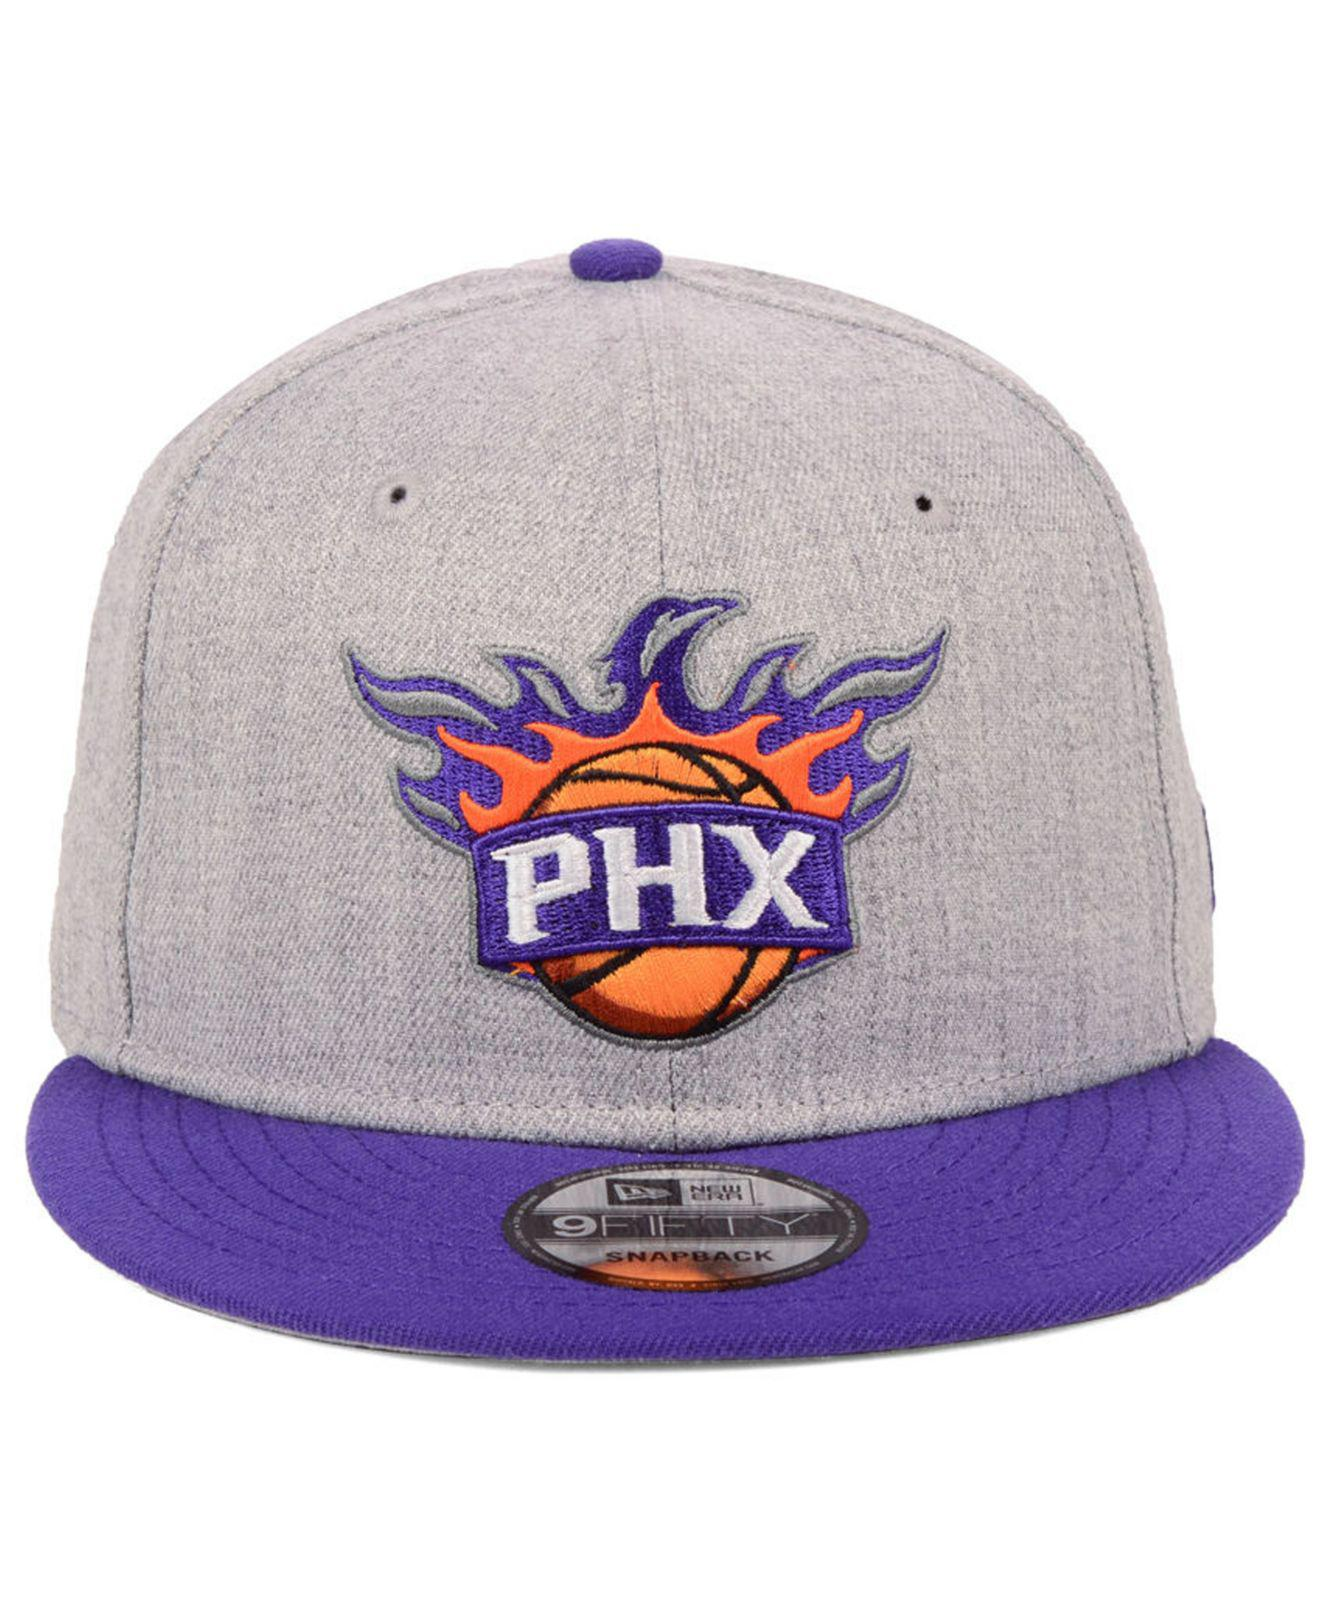 watch 36c65 ef3bf ... best price lyst ktz phoenix suns heather gray 9fifty snapback cap in  gray for men d0b1c